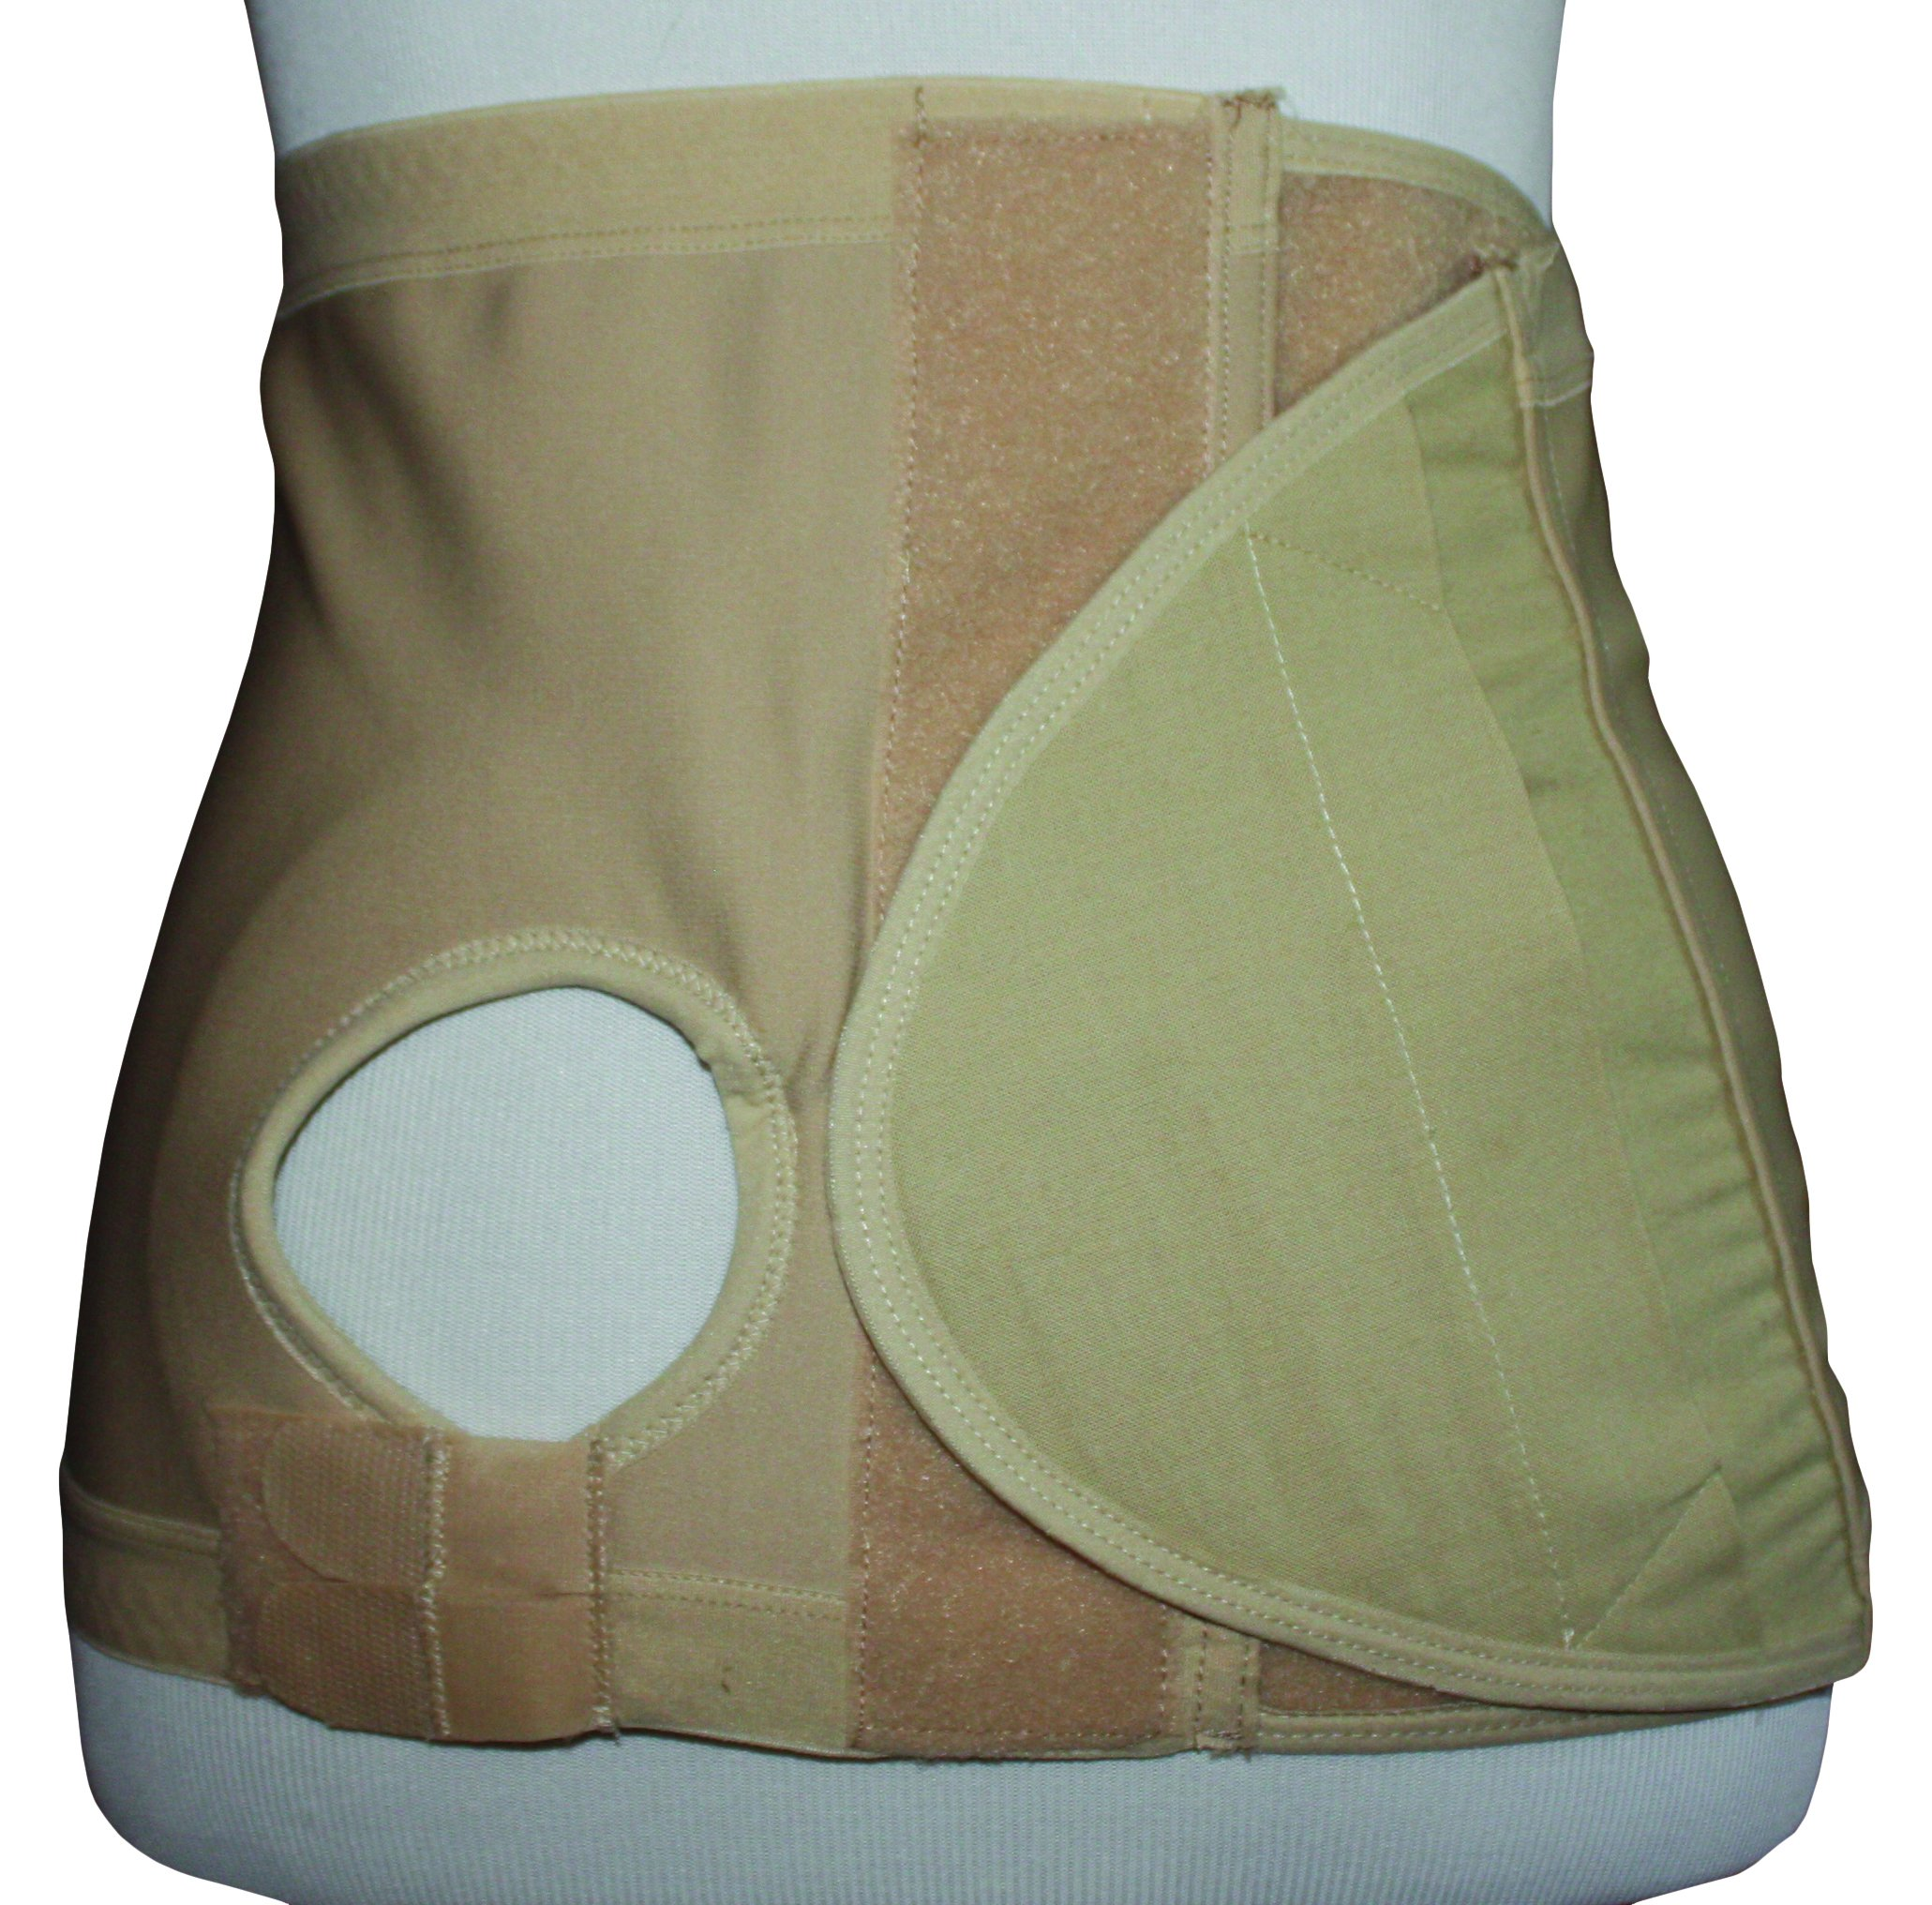 Safe n' Simple Right Hernia Support Belt with Adjustable Hole, 26cm, Beige, X-Small